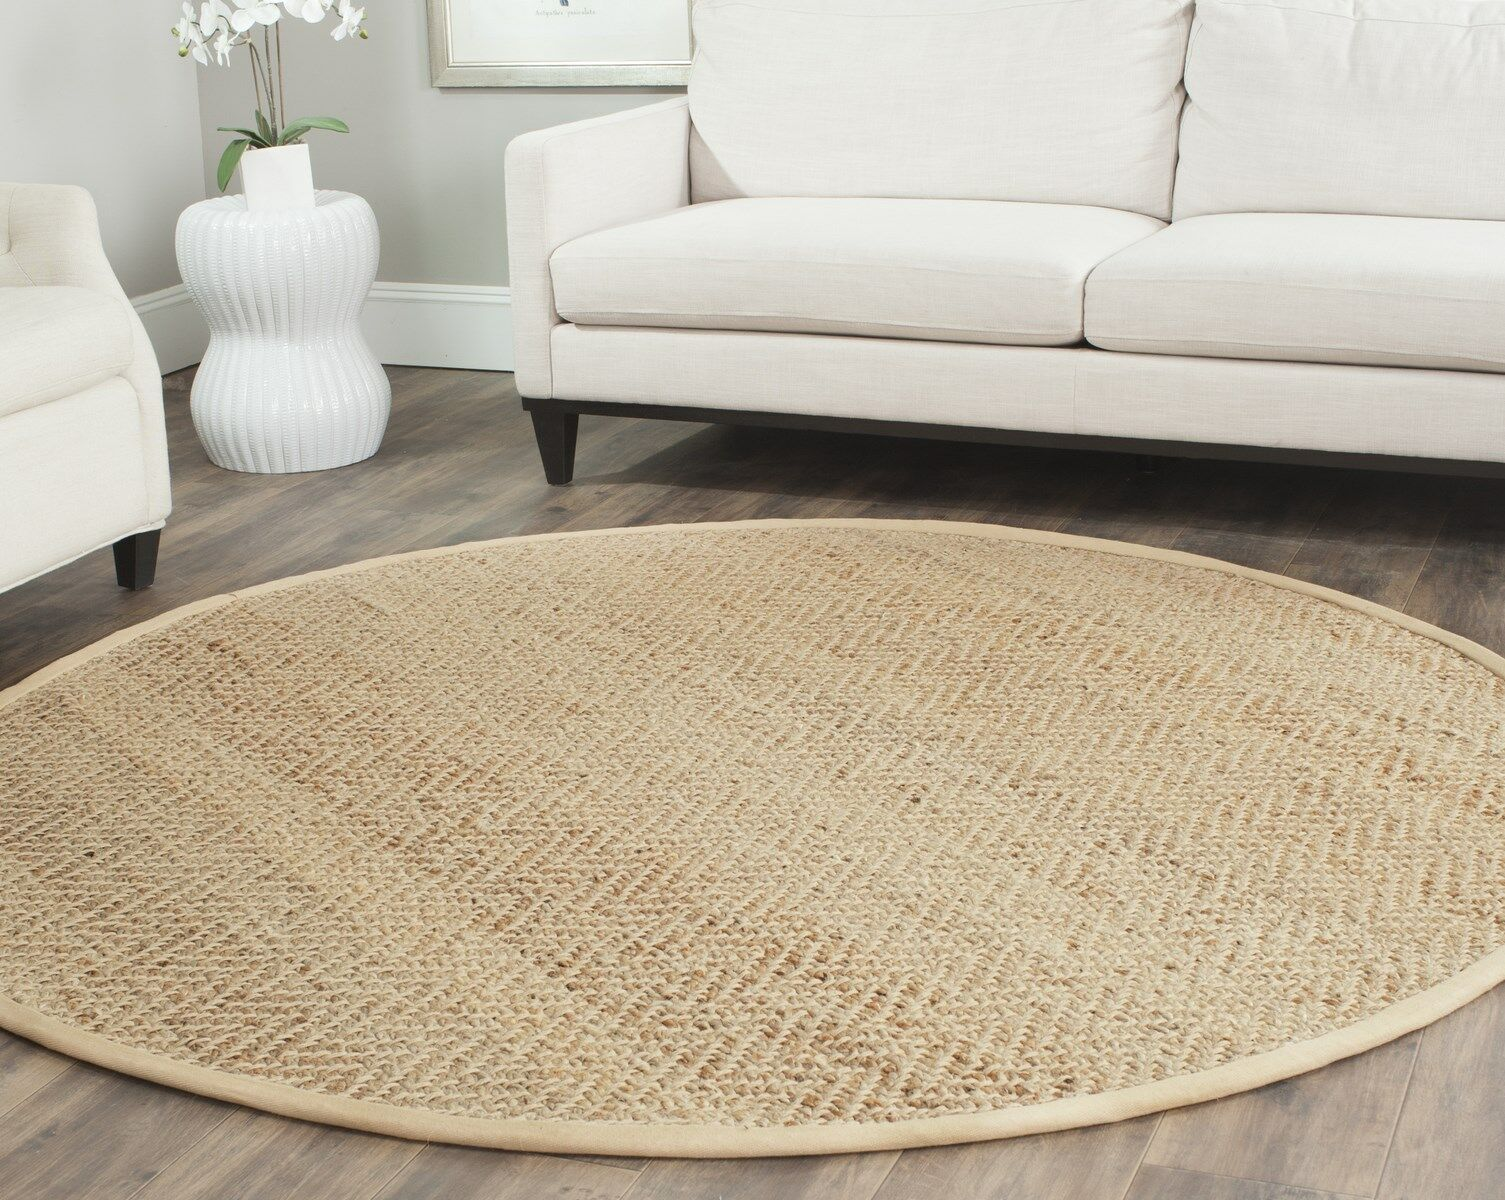 Michaels Hand-Loomed Beige Area Rug Rug Size: Round 5'